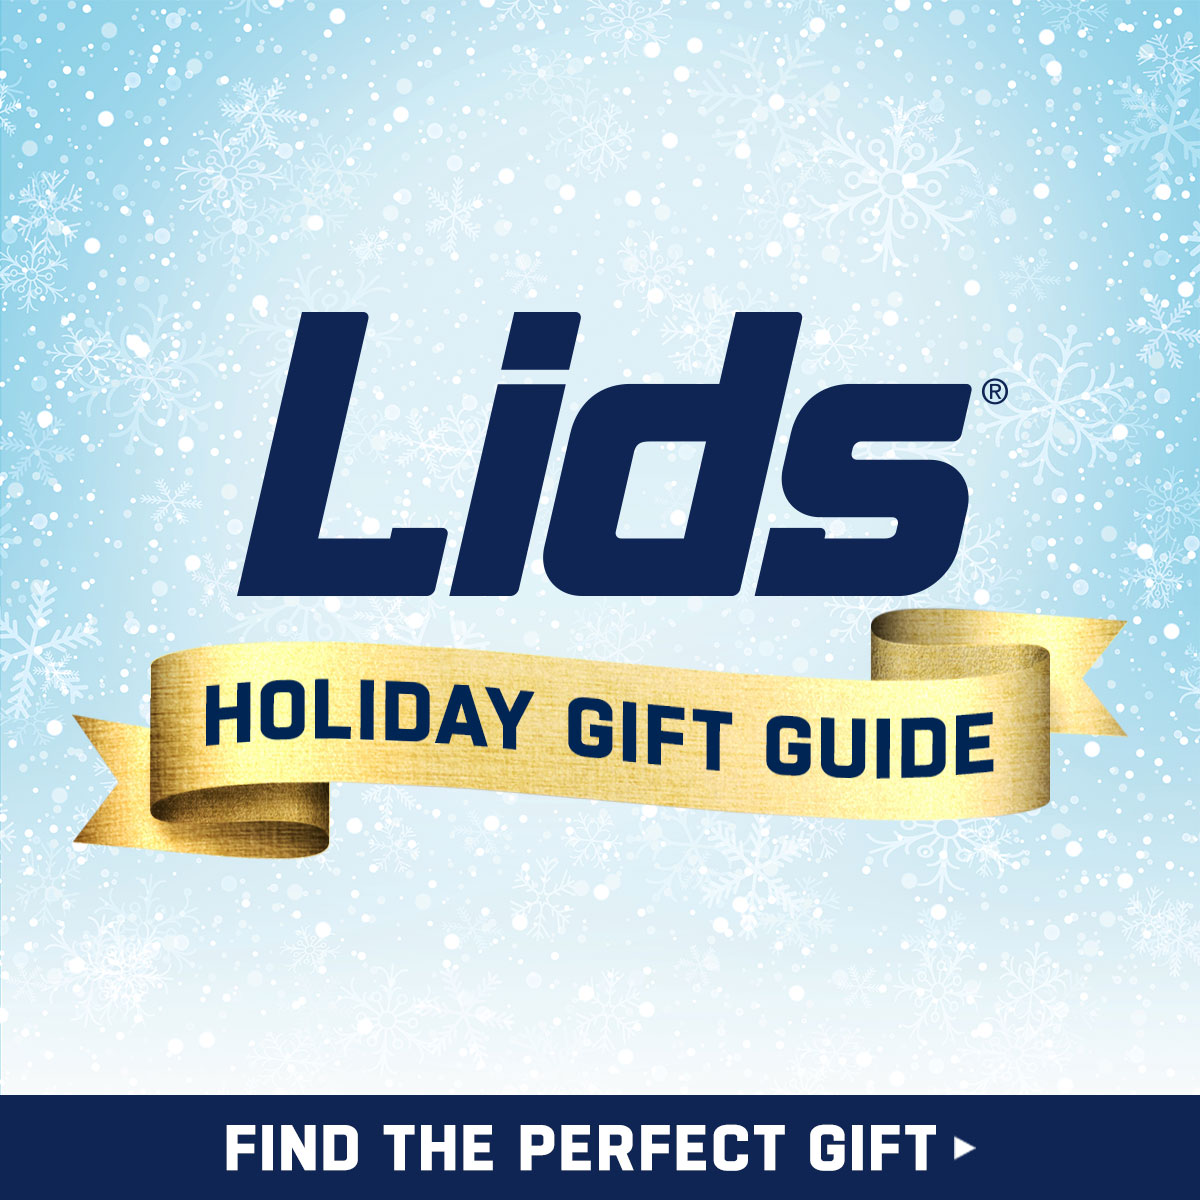 LIDS Holiday Gift Guide - Find the perfect gift